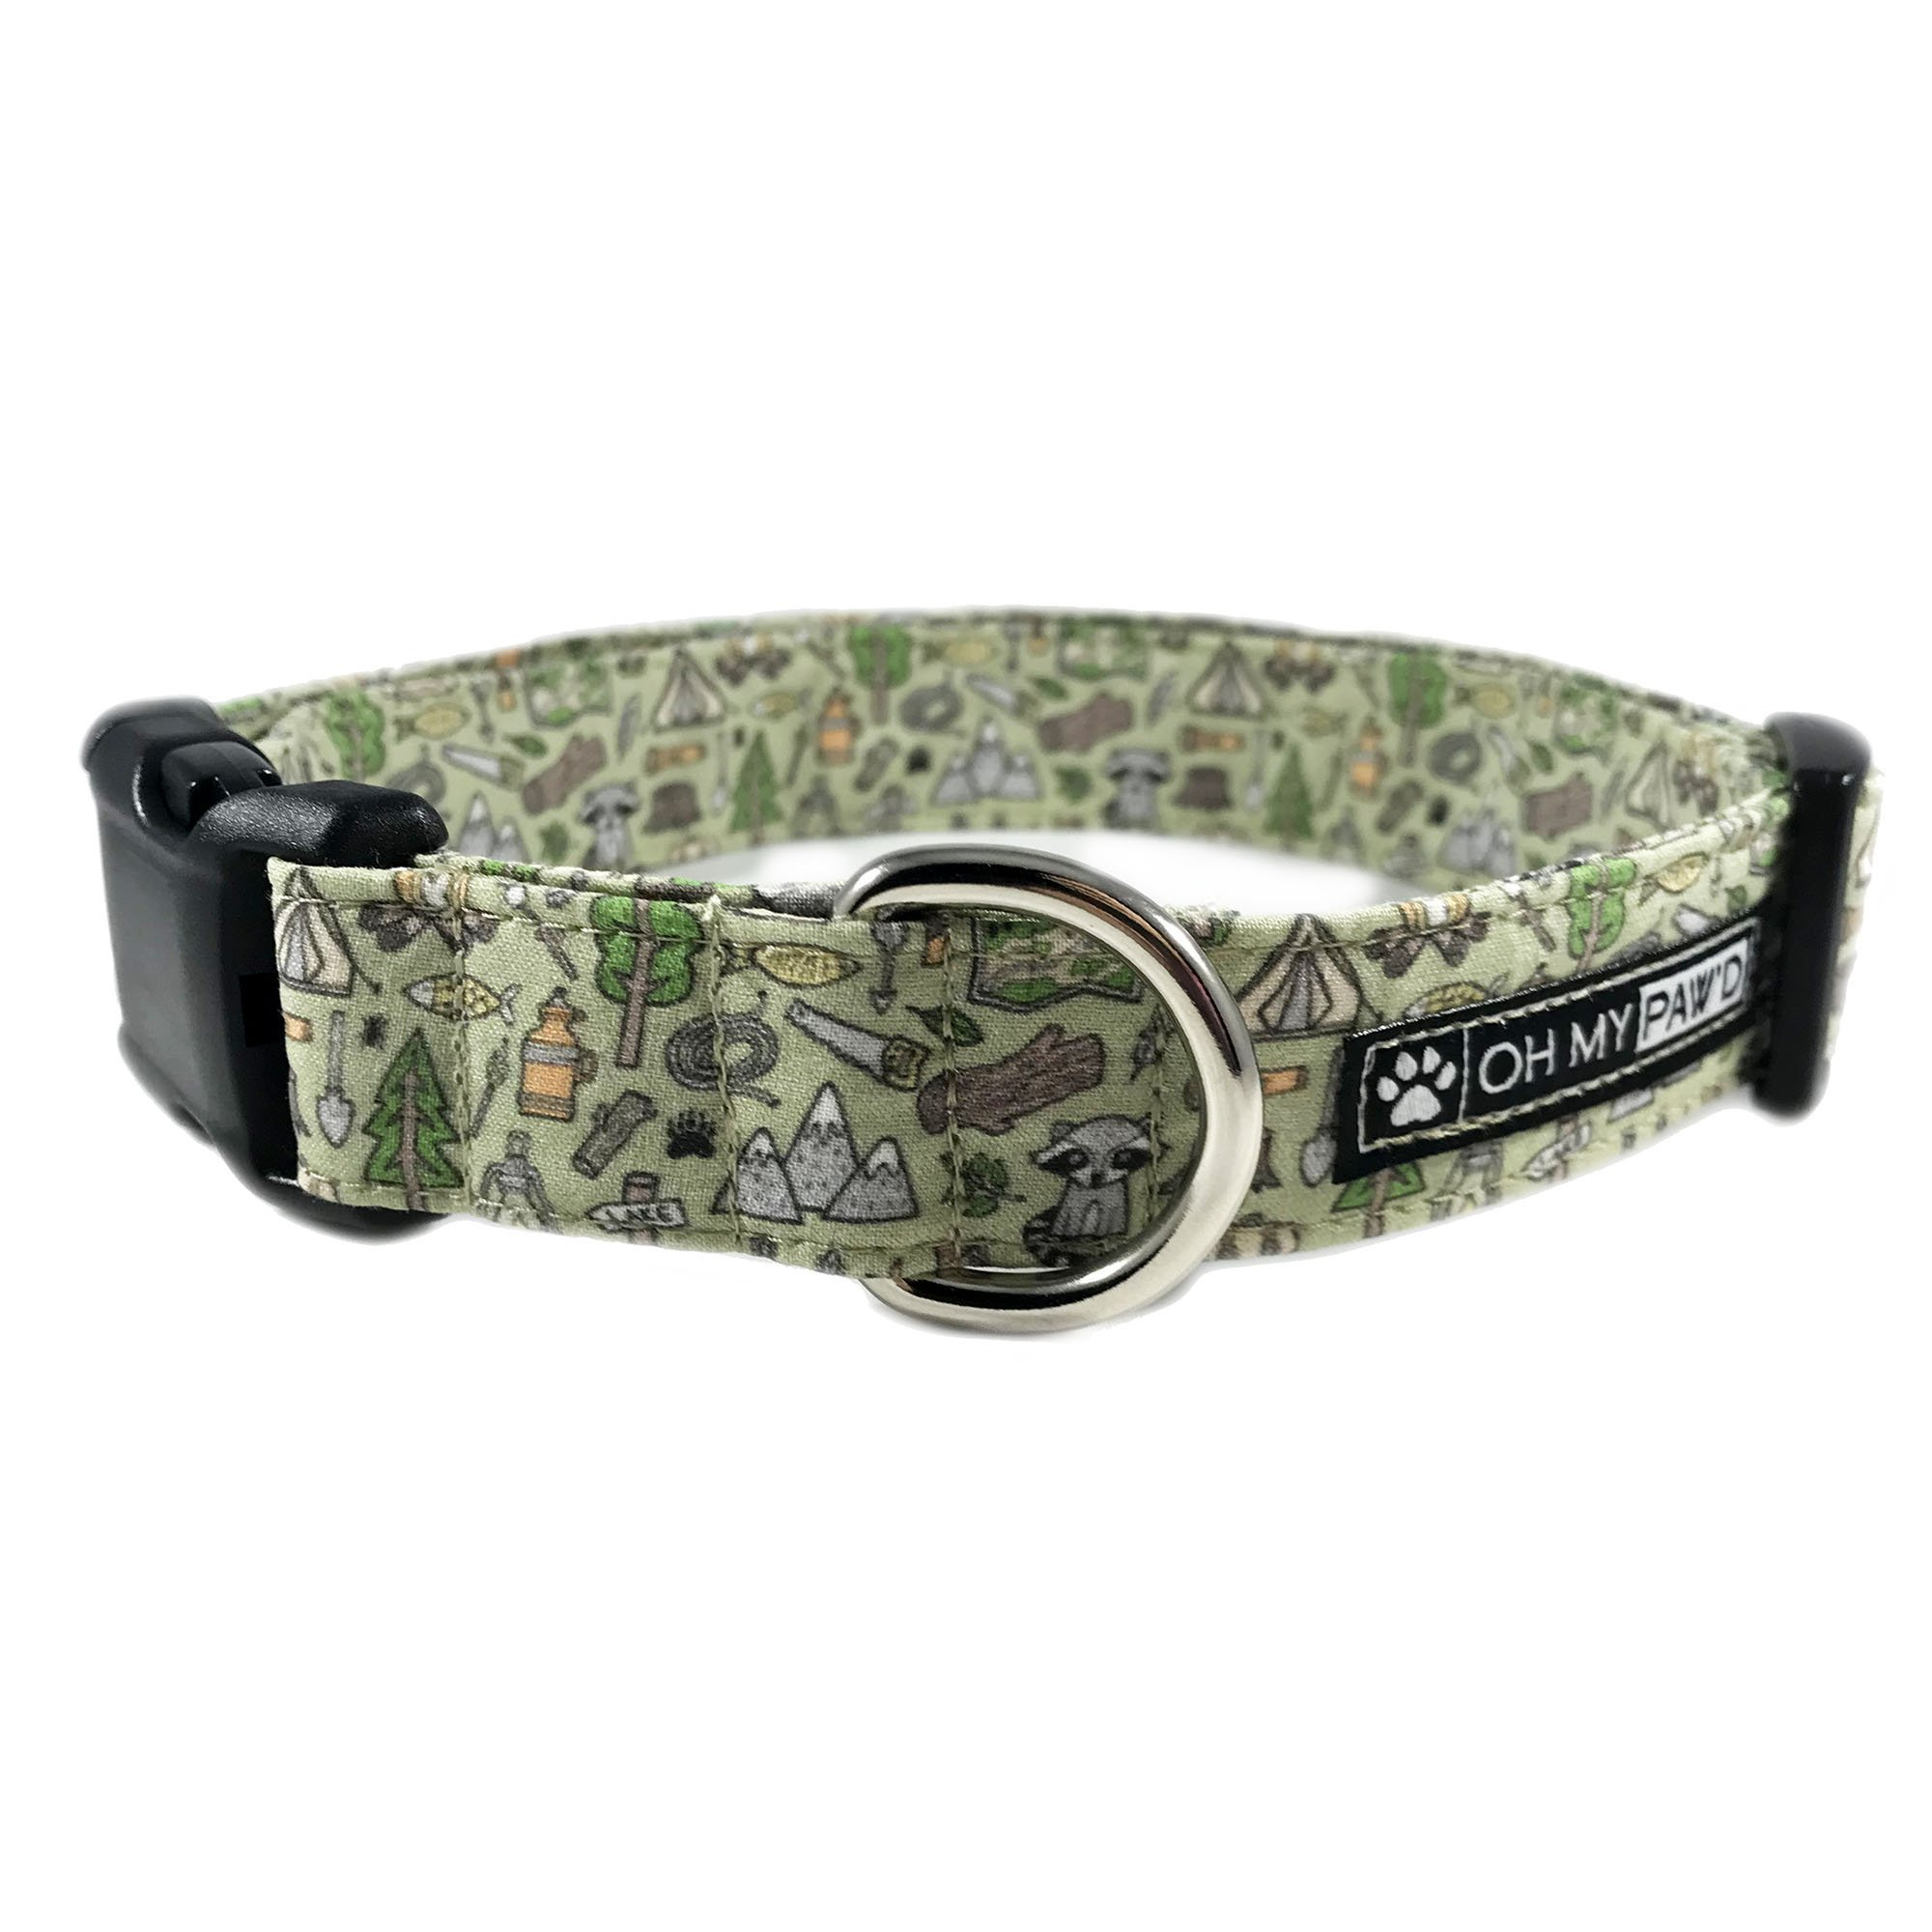 Camping Dog or Cat Collar for Pets Size Large 1'' Wide and 15-23'' Long by Oh My Paw'd